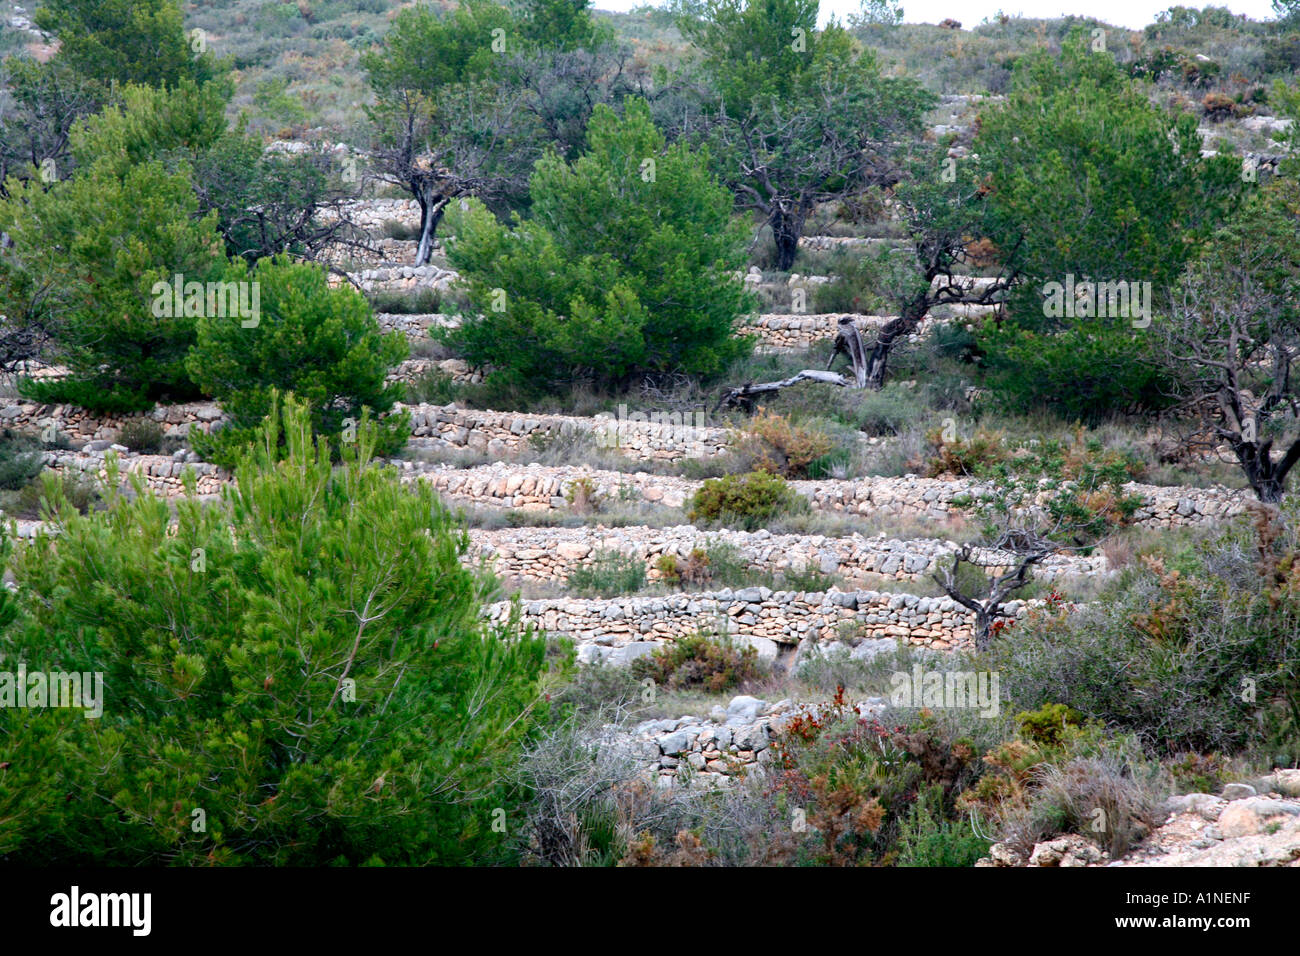 spanish stone walls on the hills - Stock Image